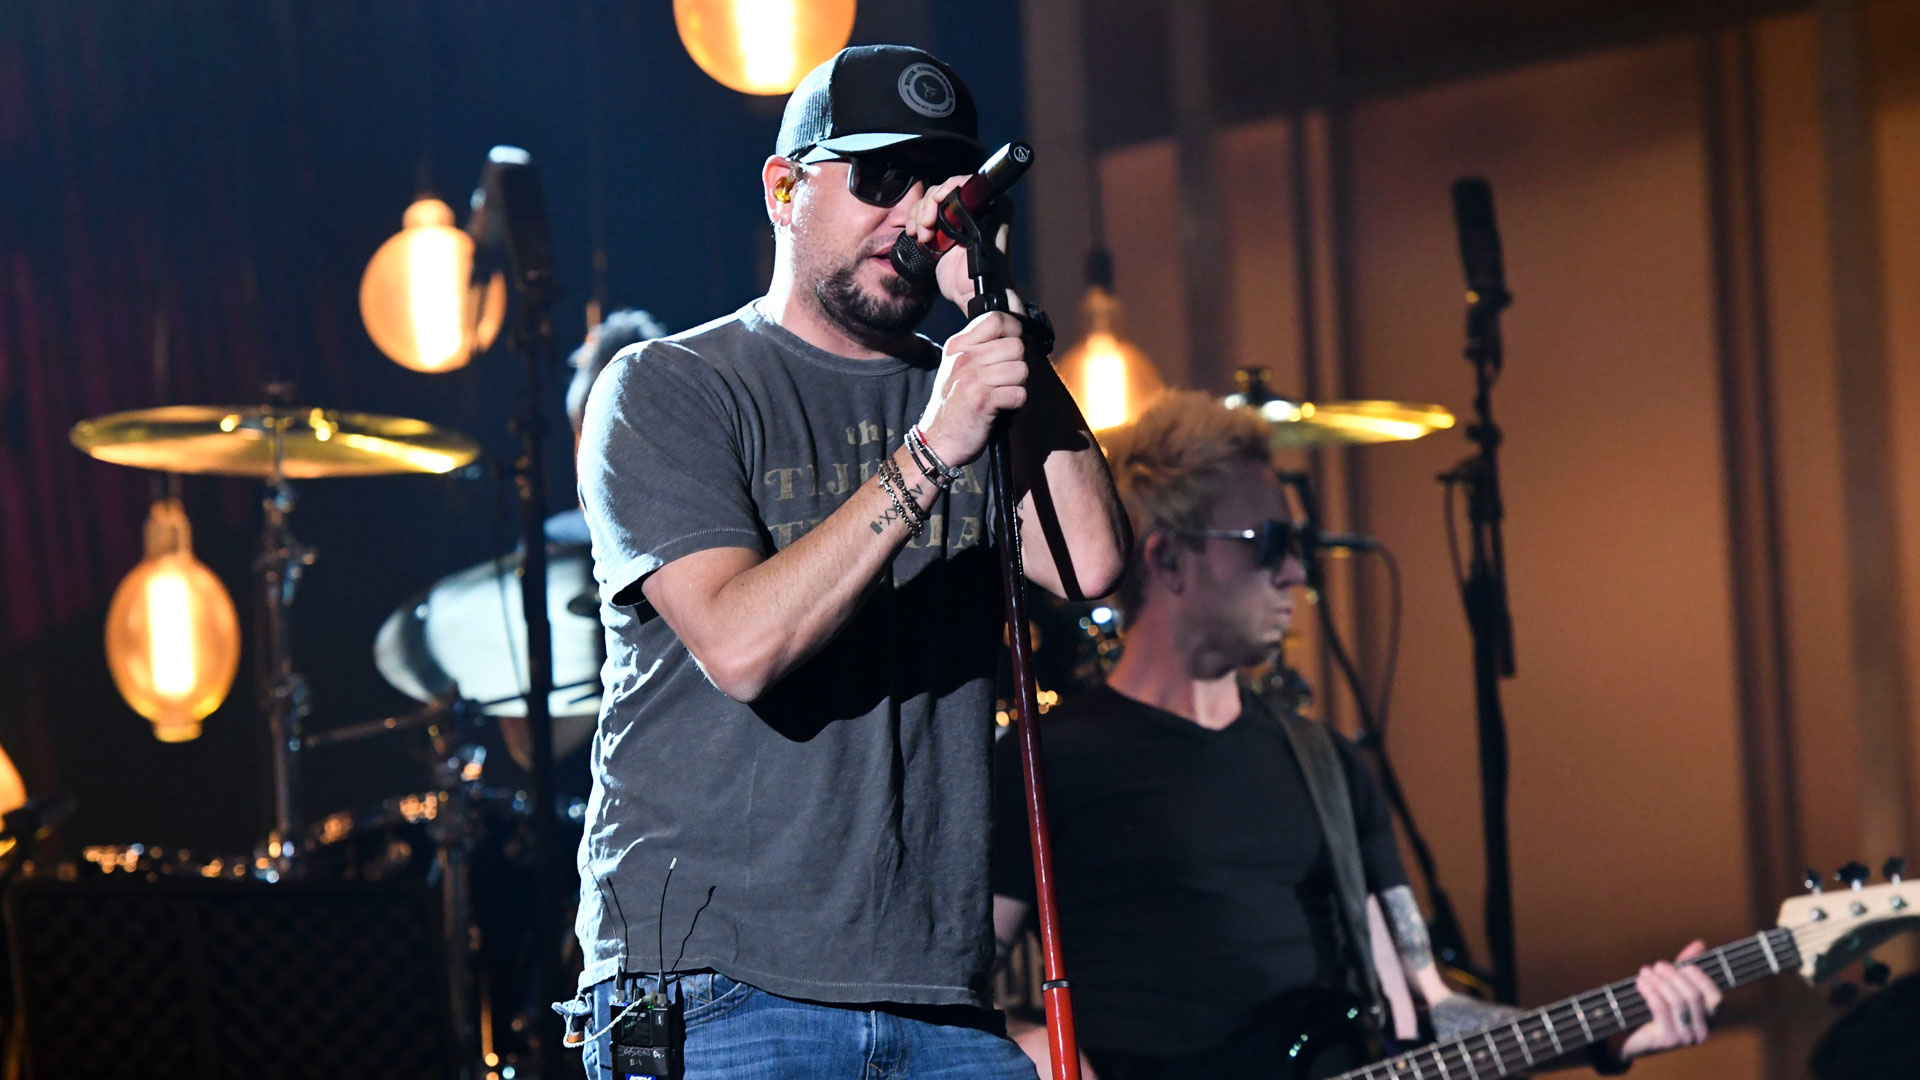 Jason Aldean sports some shades under the bright lights at MGM Grand Garden Arena in Vegas.